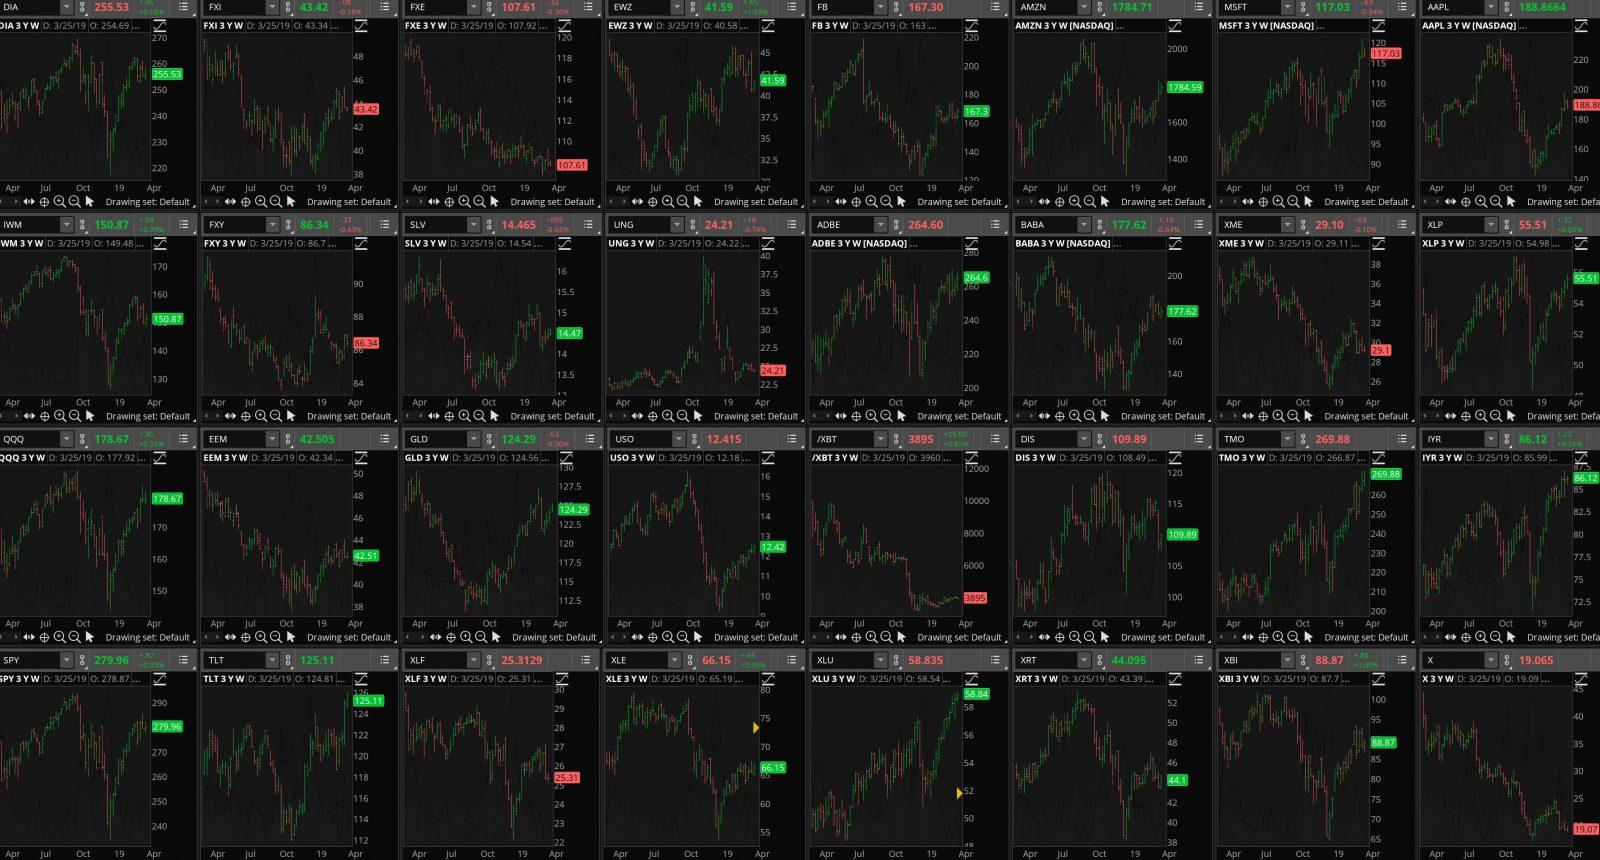 cultivate cashflow options trading daily market analysis charts 032619 1